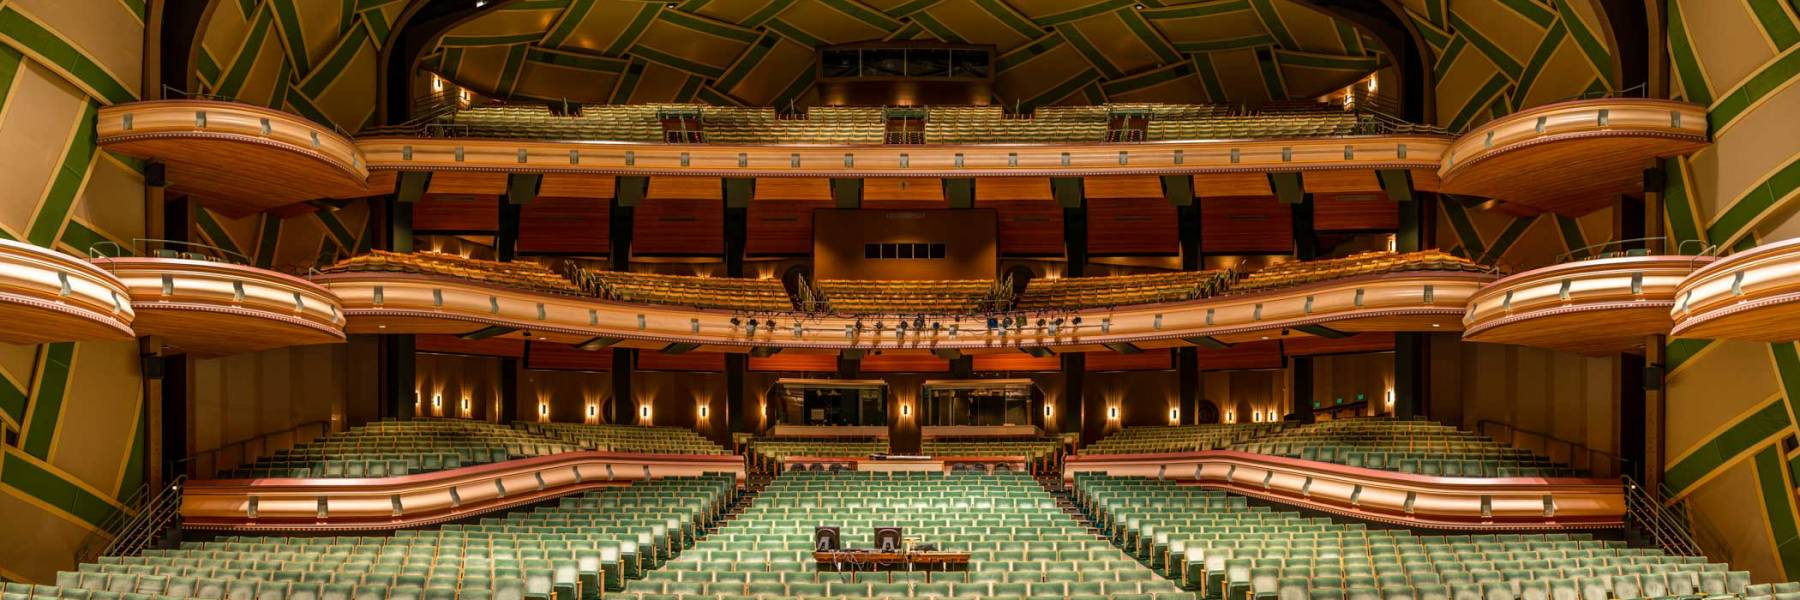 Wide angle view from the stage of Silva Concert Hall